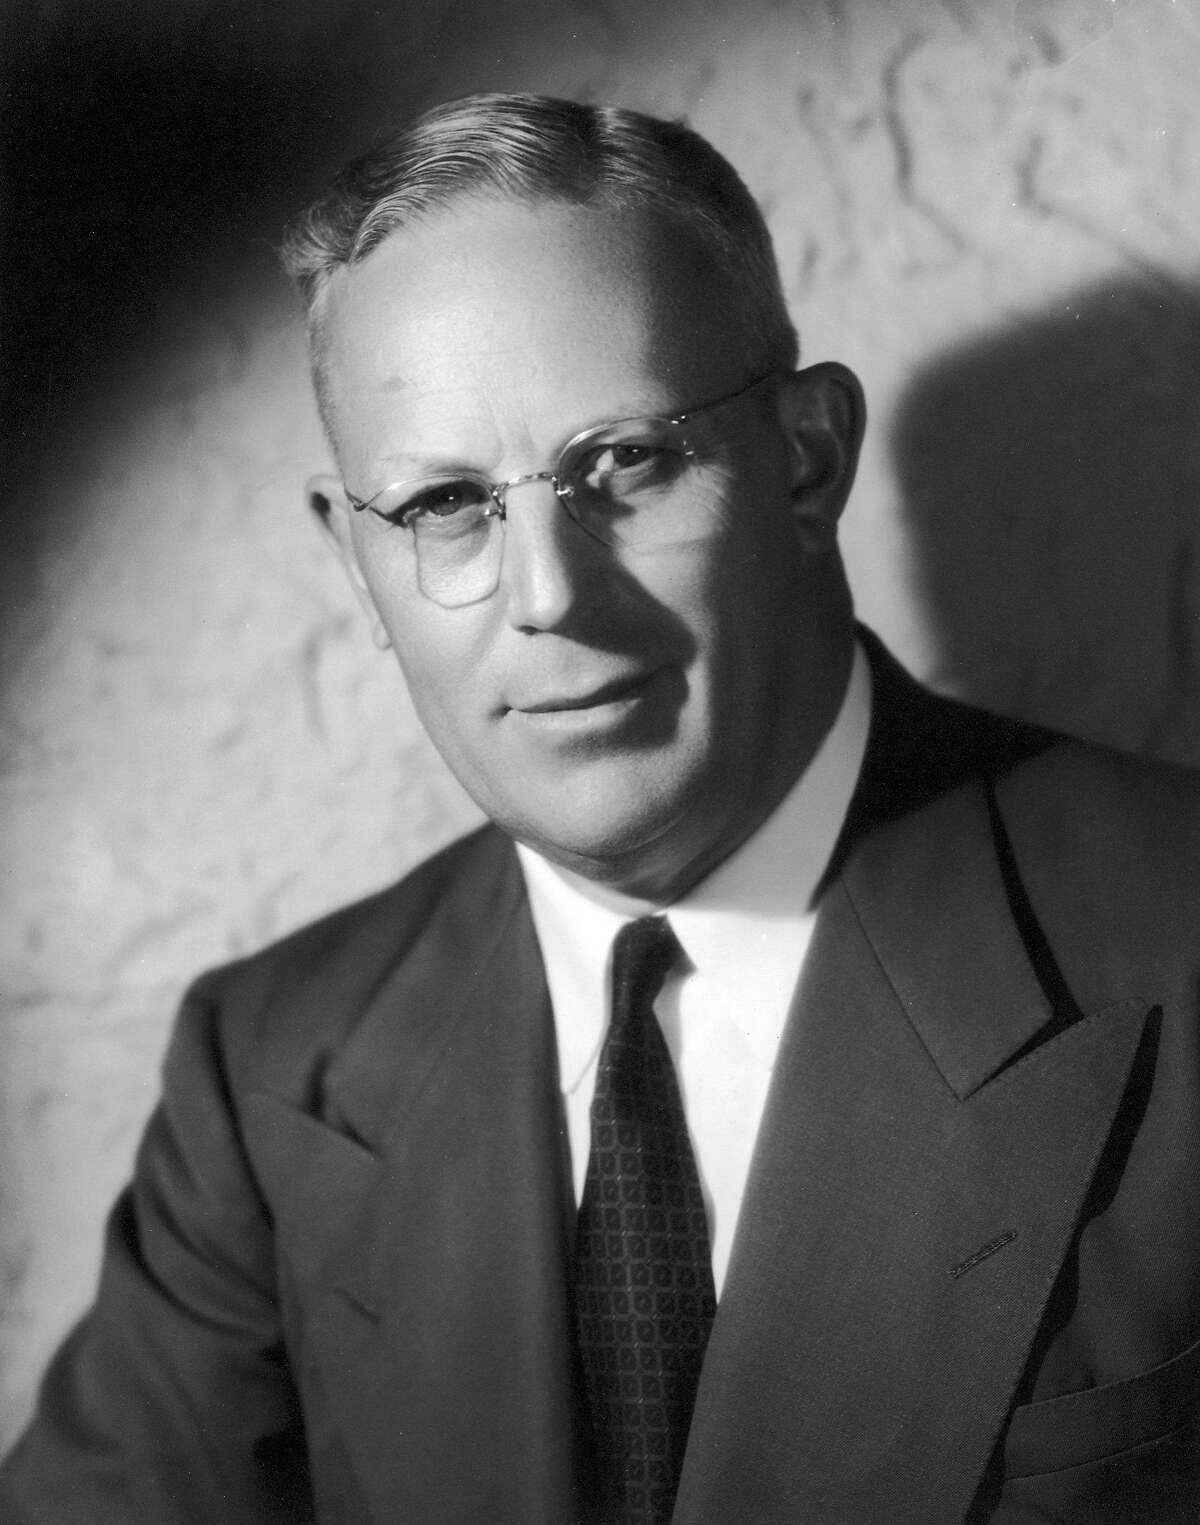 circa 1942: Studio portrait of American politician Earl Warren (1891 - 1974). Attorney General of California (1939 - 1943), Governor of California (1943 - 1953) and Fourteenth Chief Justice of the US Supreme Court (1953 - 1969). (Photo by Hulton Archive/Getty Images)